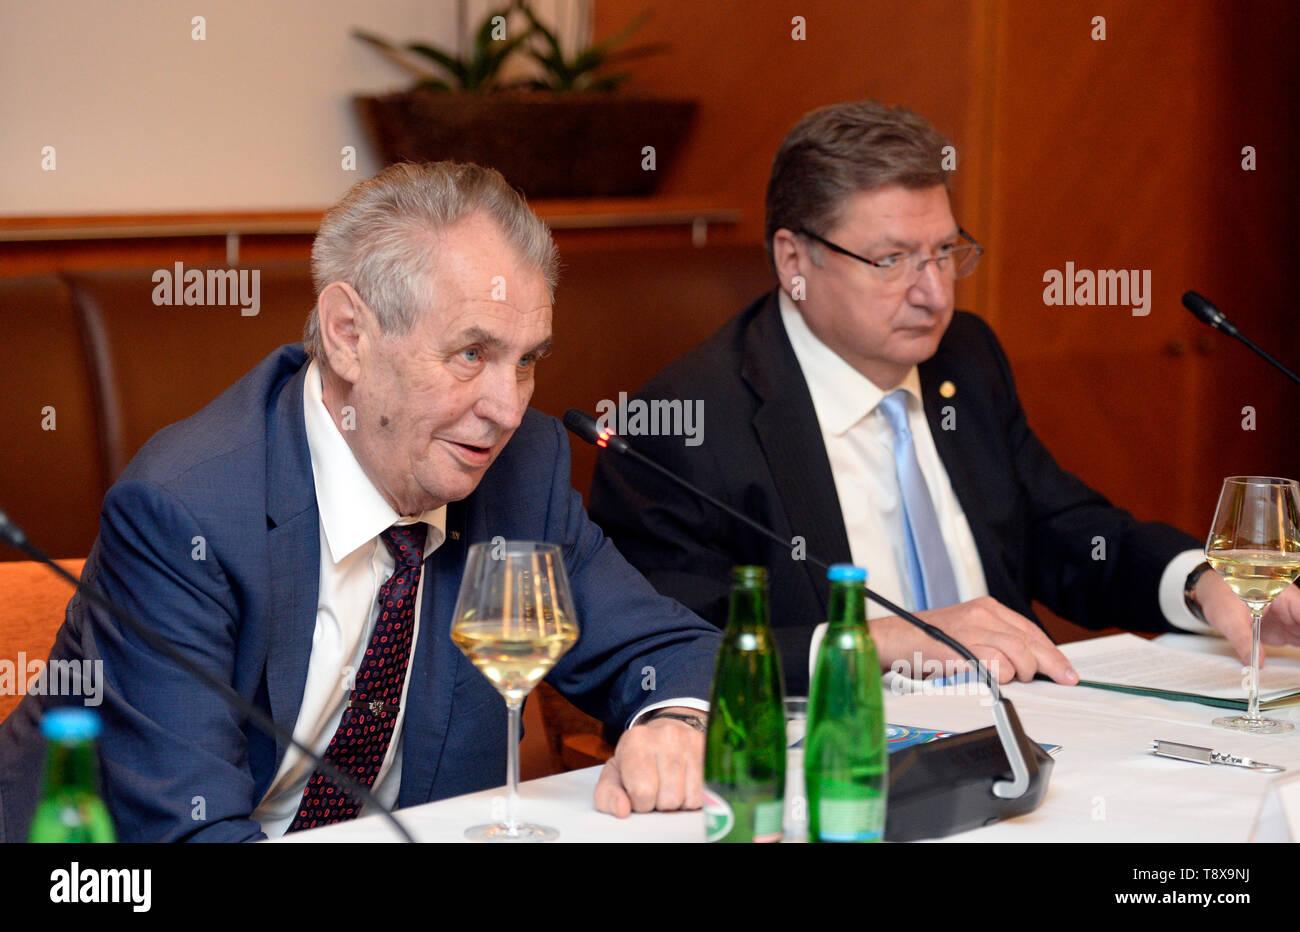 Budapest, Hungary. 14th May, 2019. L-R Czech President Milos Zeman and Head of Hungarian chamber of commerce Laszlo Parragh debate with Czech and Hungarian entrepreneurs in Budapest, Hungary, on May 14, 2019. Czech President launched his three-day visit to Hungary in this day. Credit: Katerina Sulova/CTK Photo/Alamy Live News Stock Photo